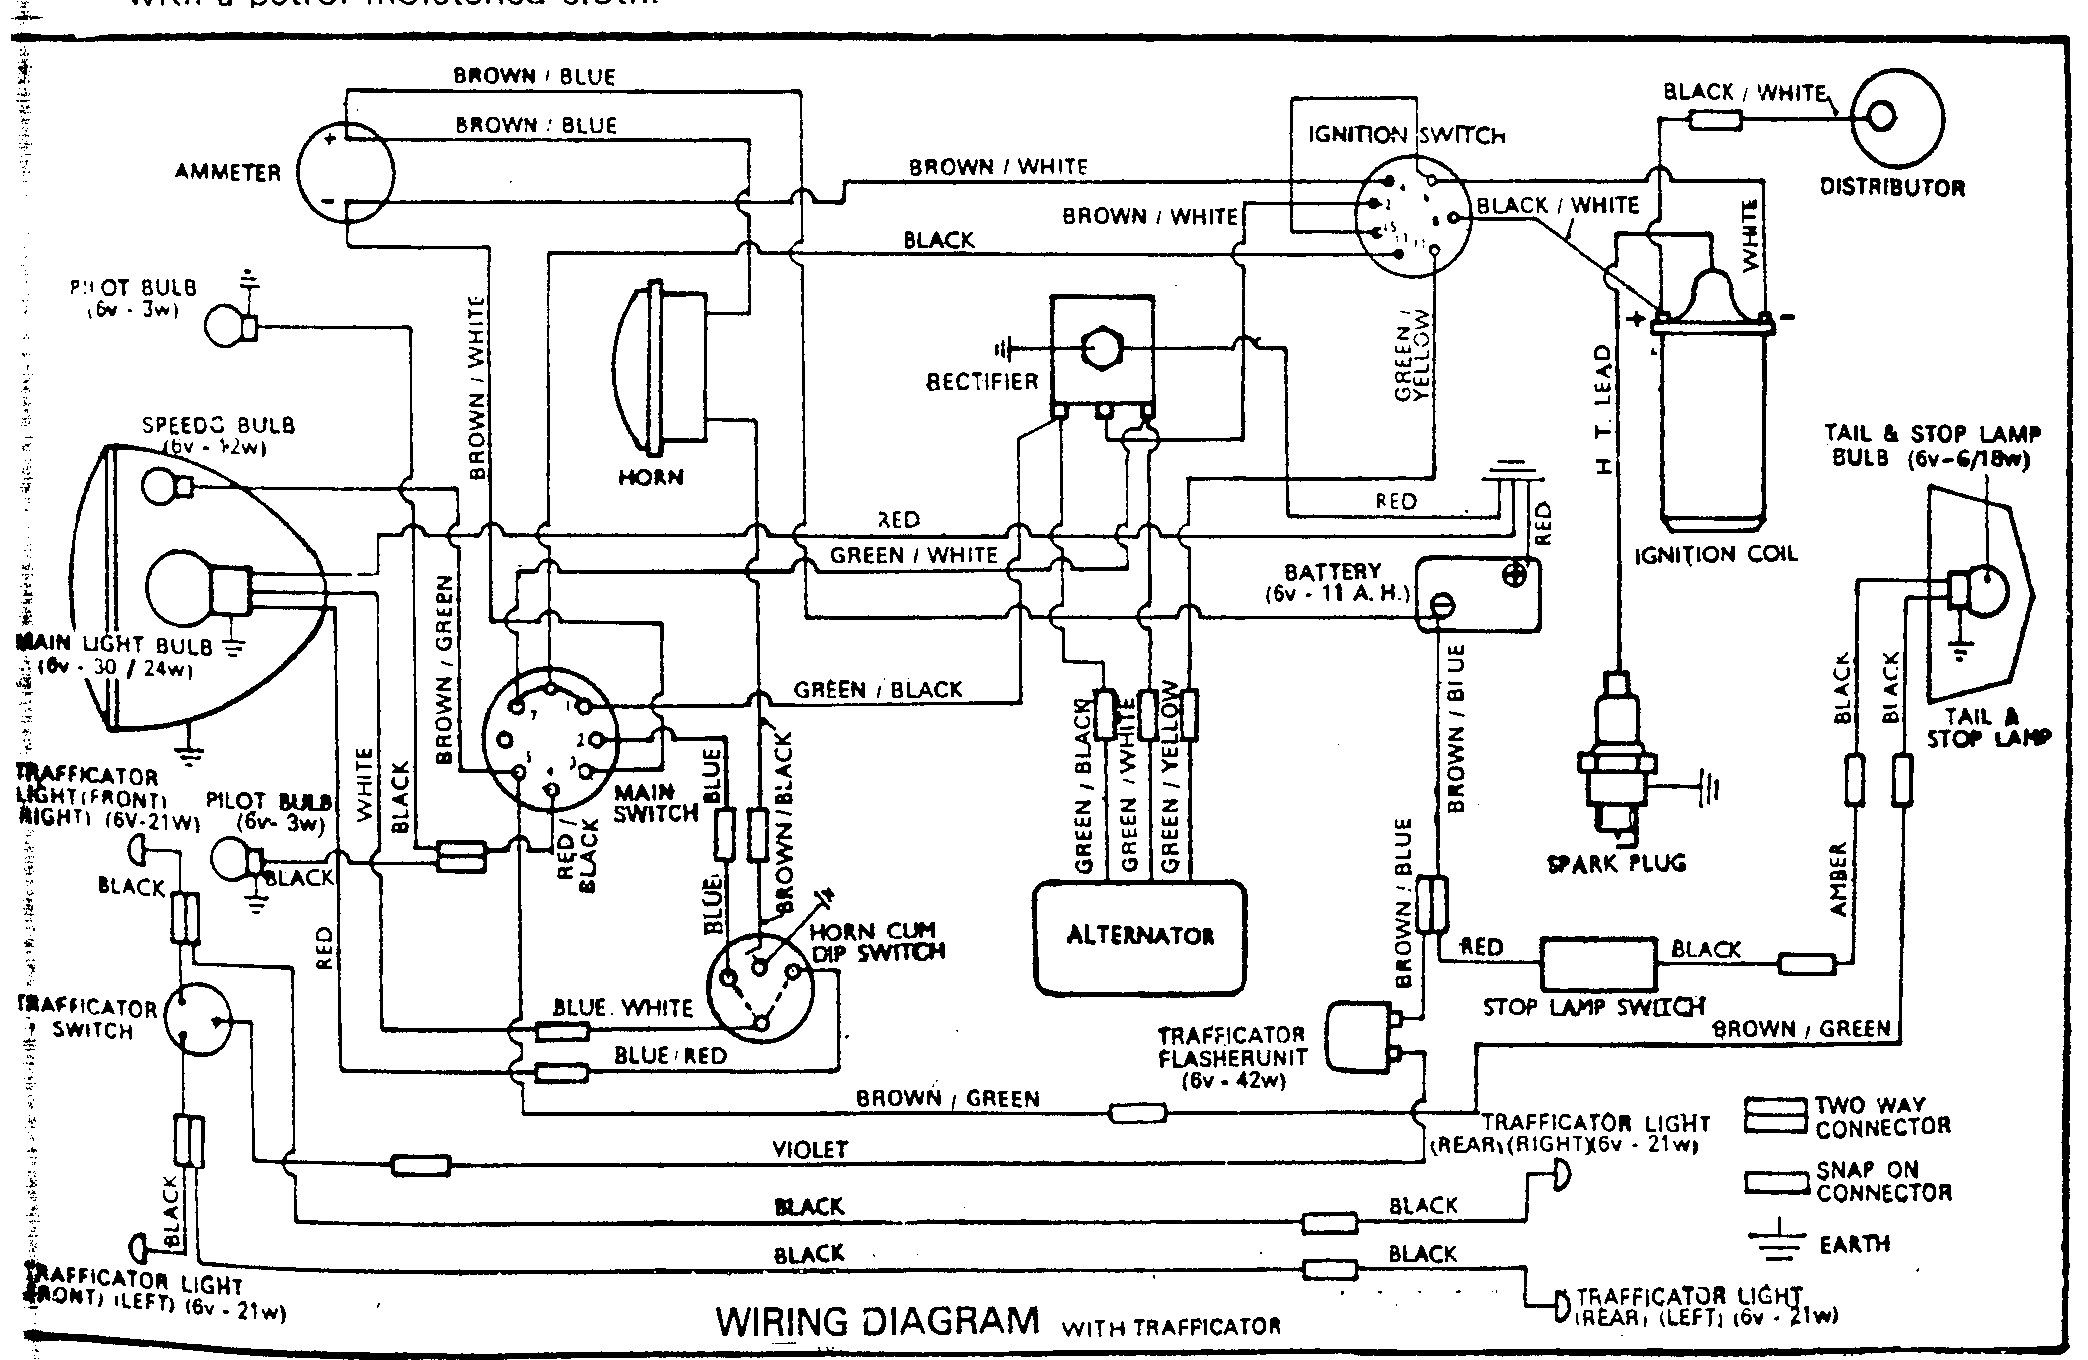 New Central Heating Zone Wiring Diagram  Diagramsample